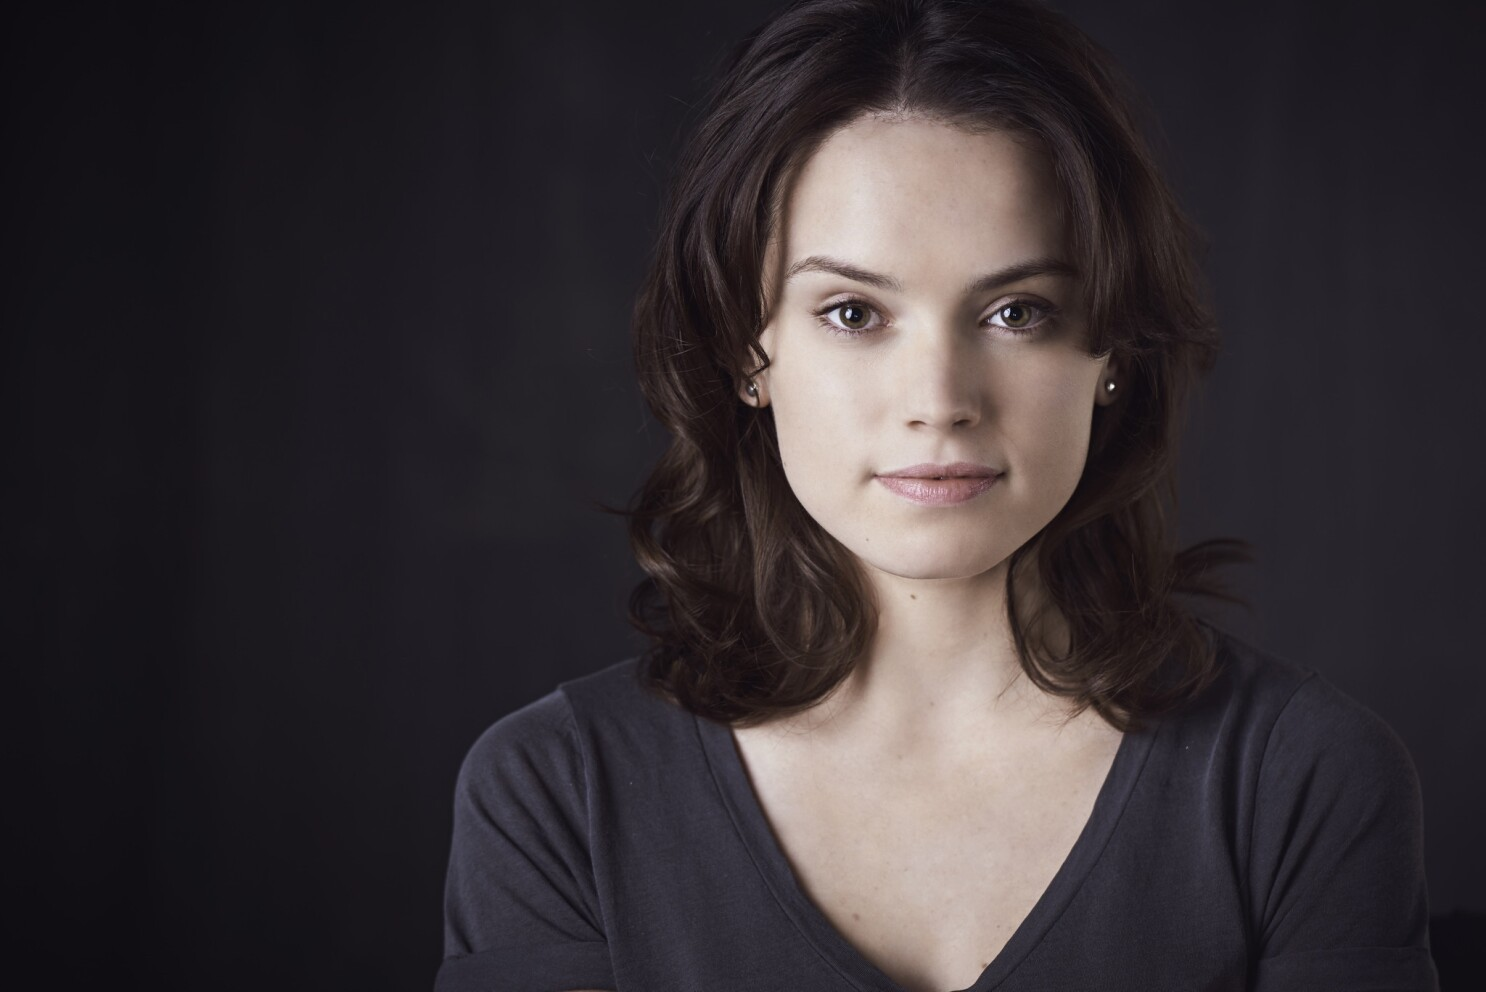 Star Wars Episode Vii Five Things To Know About Daisy Ridley Los Angeles Times